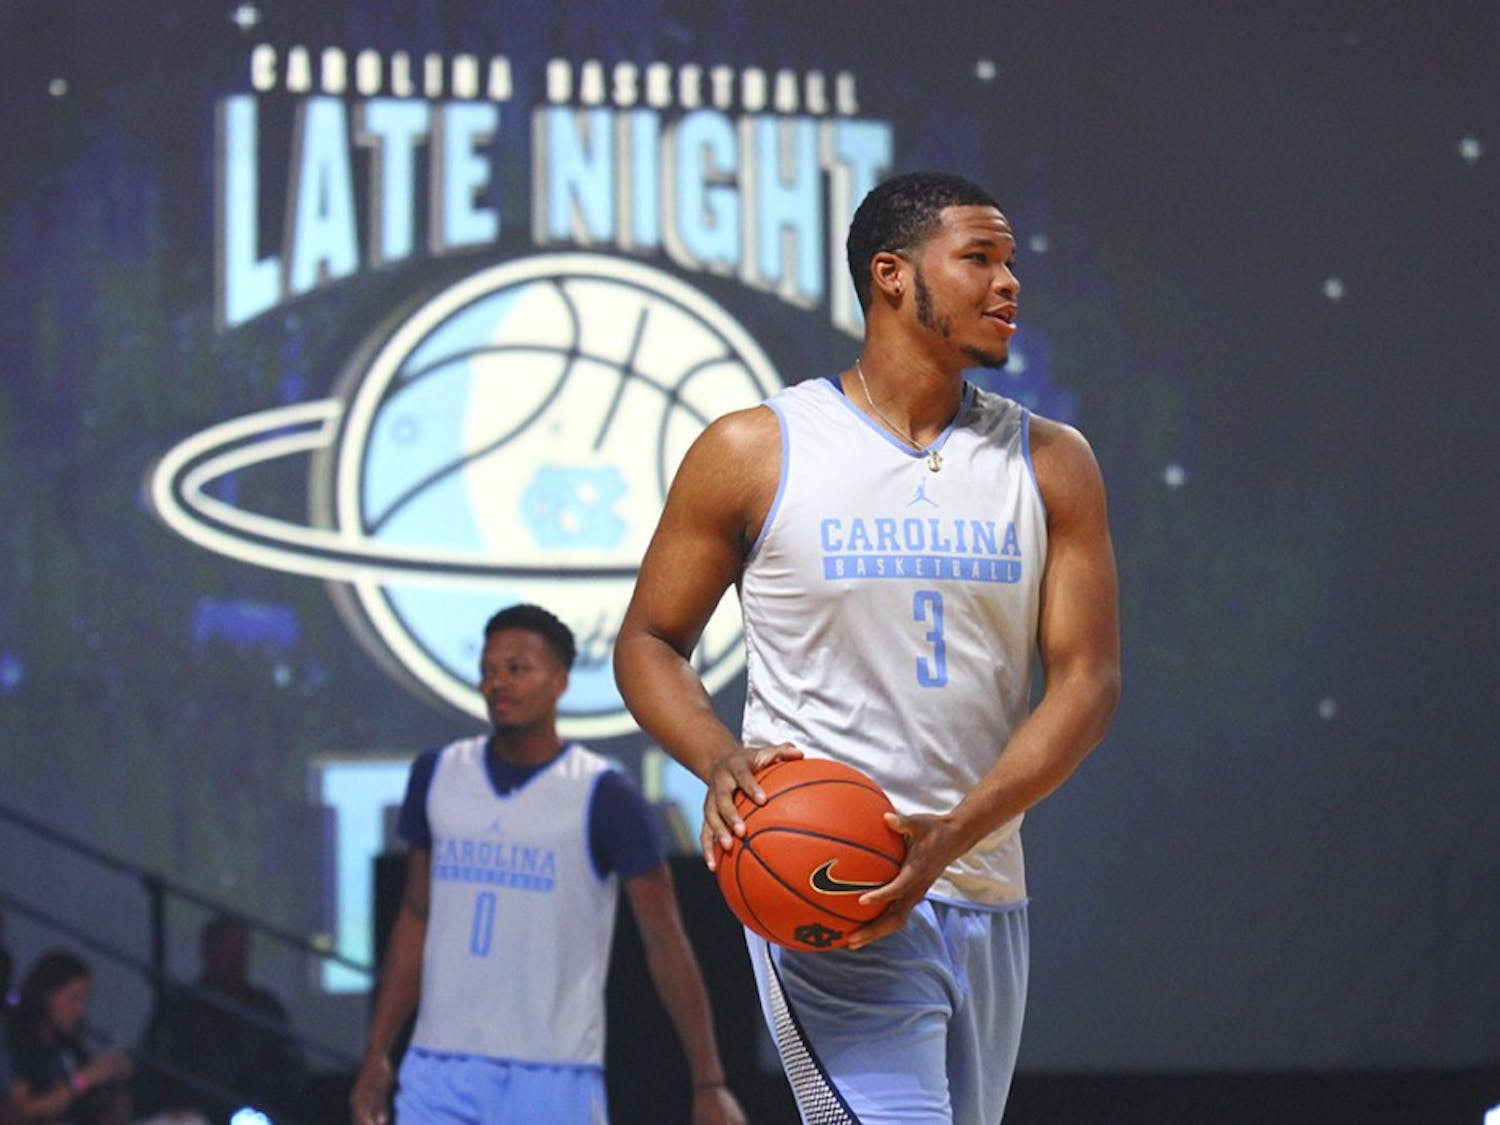 Chapel Hill got a sneak peak of the 2016 Carolina basketball teams at Late Night with Roy on Friday night.